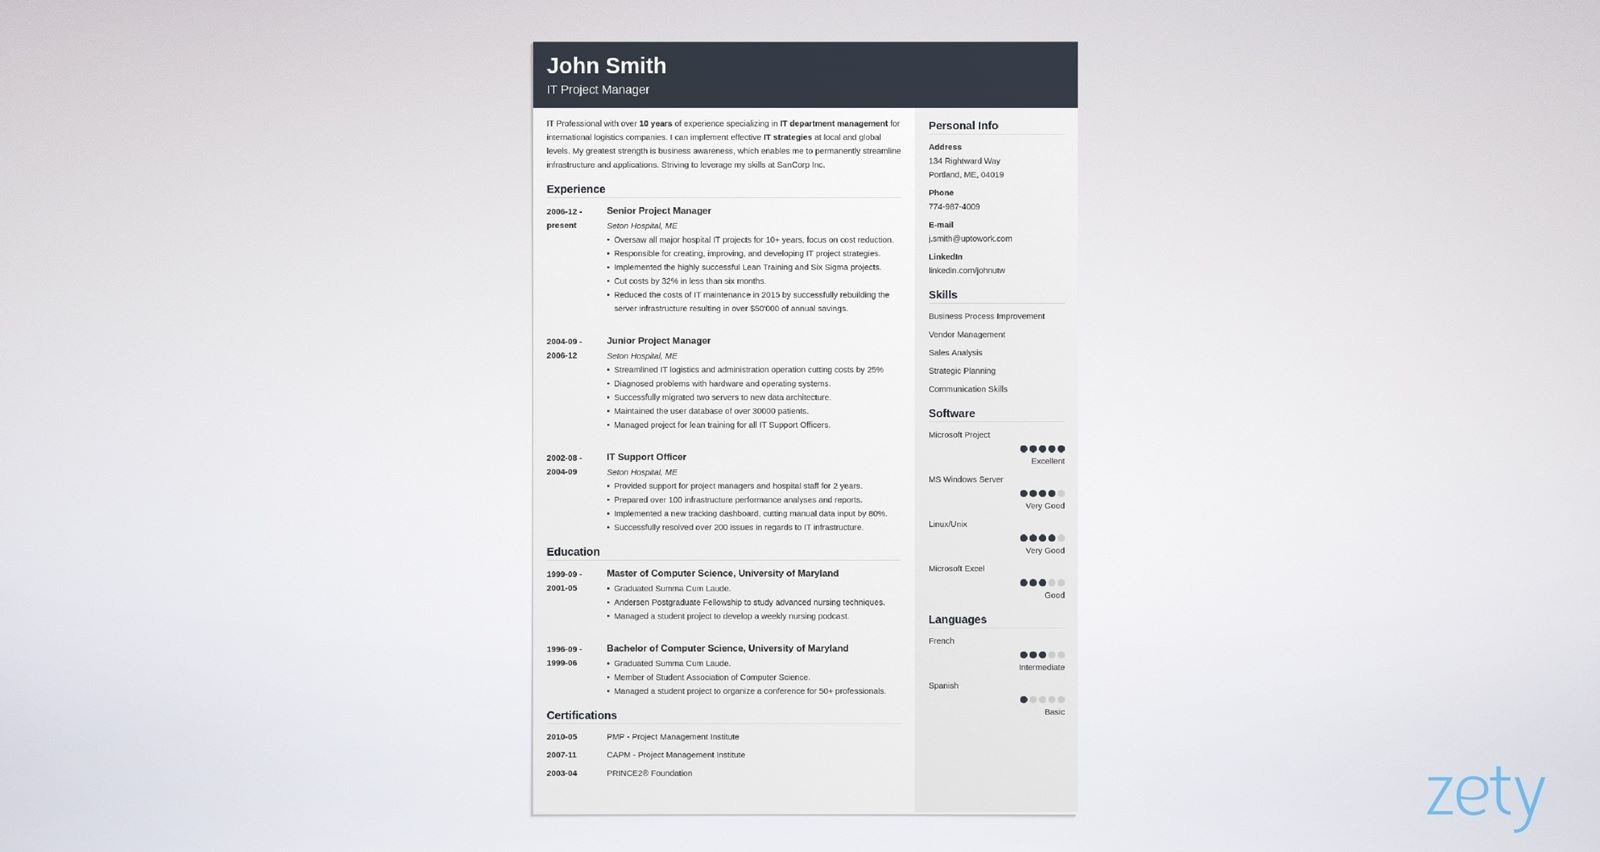 best resume templates for top picks to most popular template case management samples Resume Most Popular Resume Template